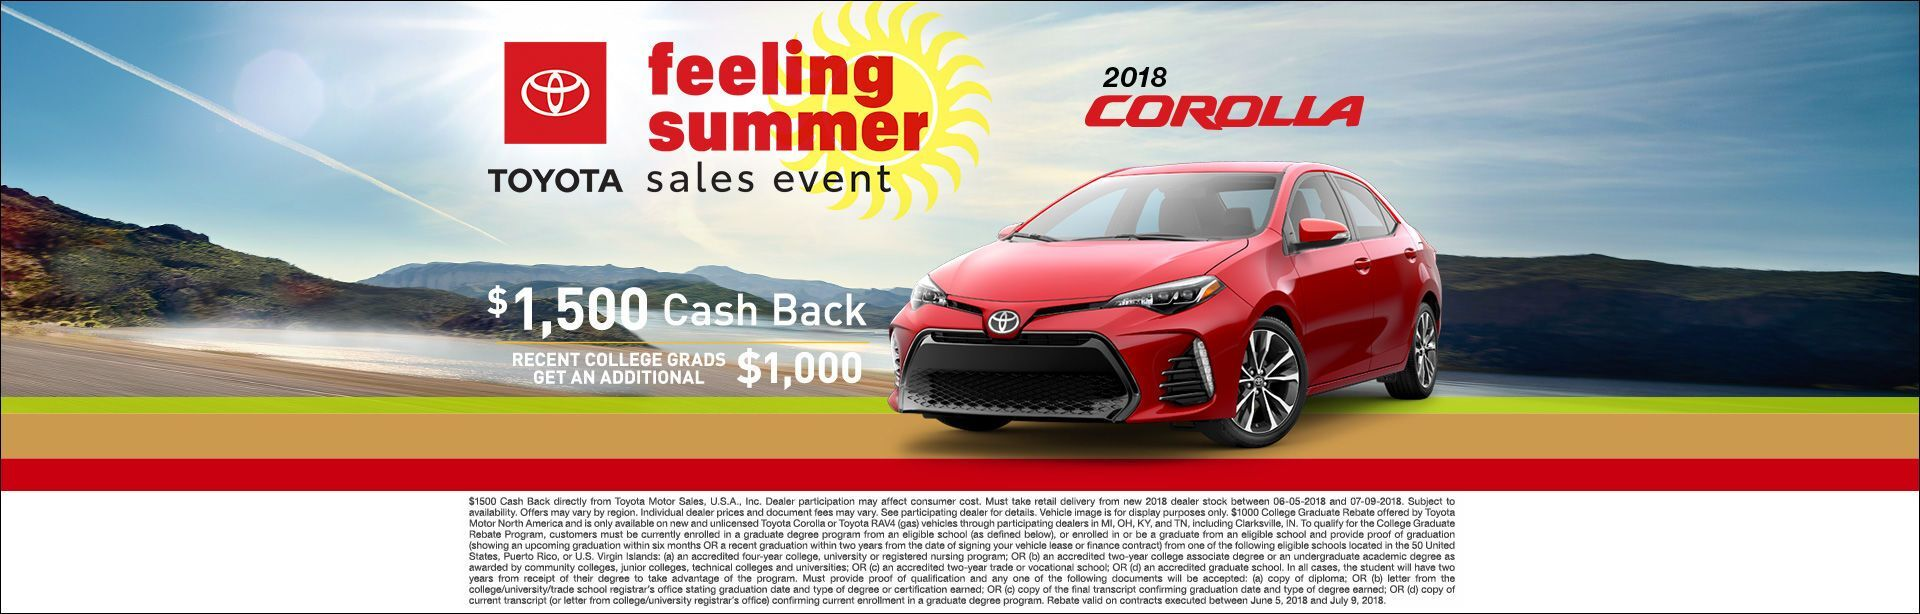 Feeling Summer Corolla Cash Back